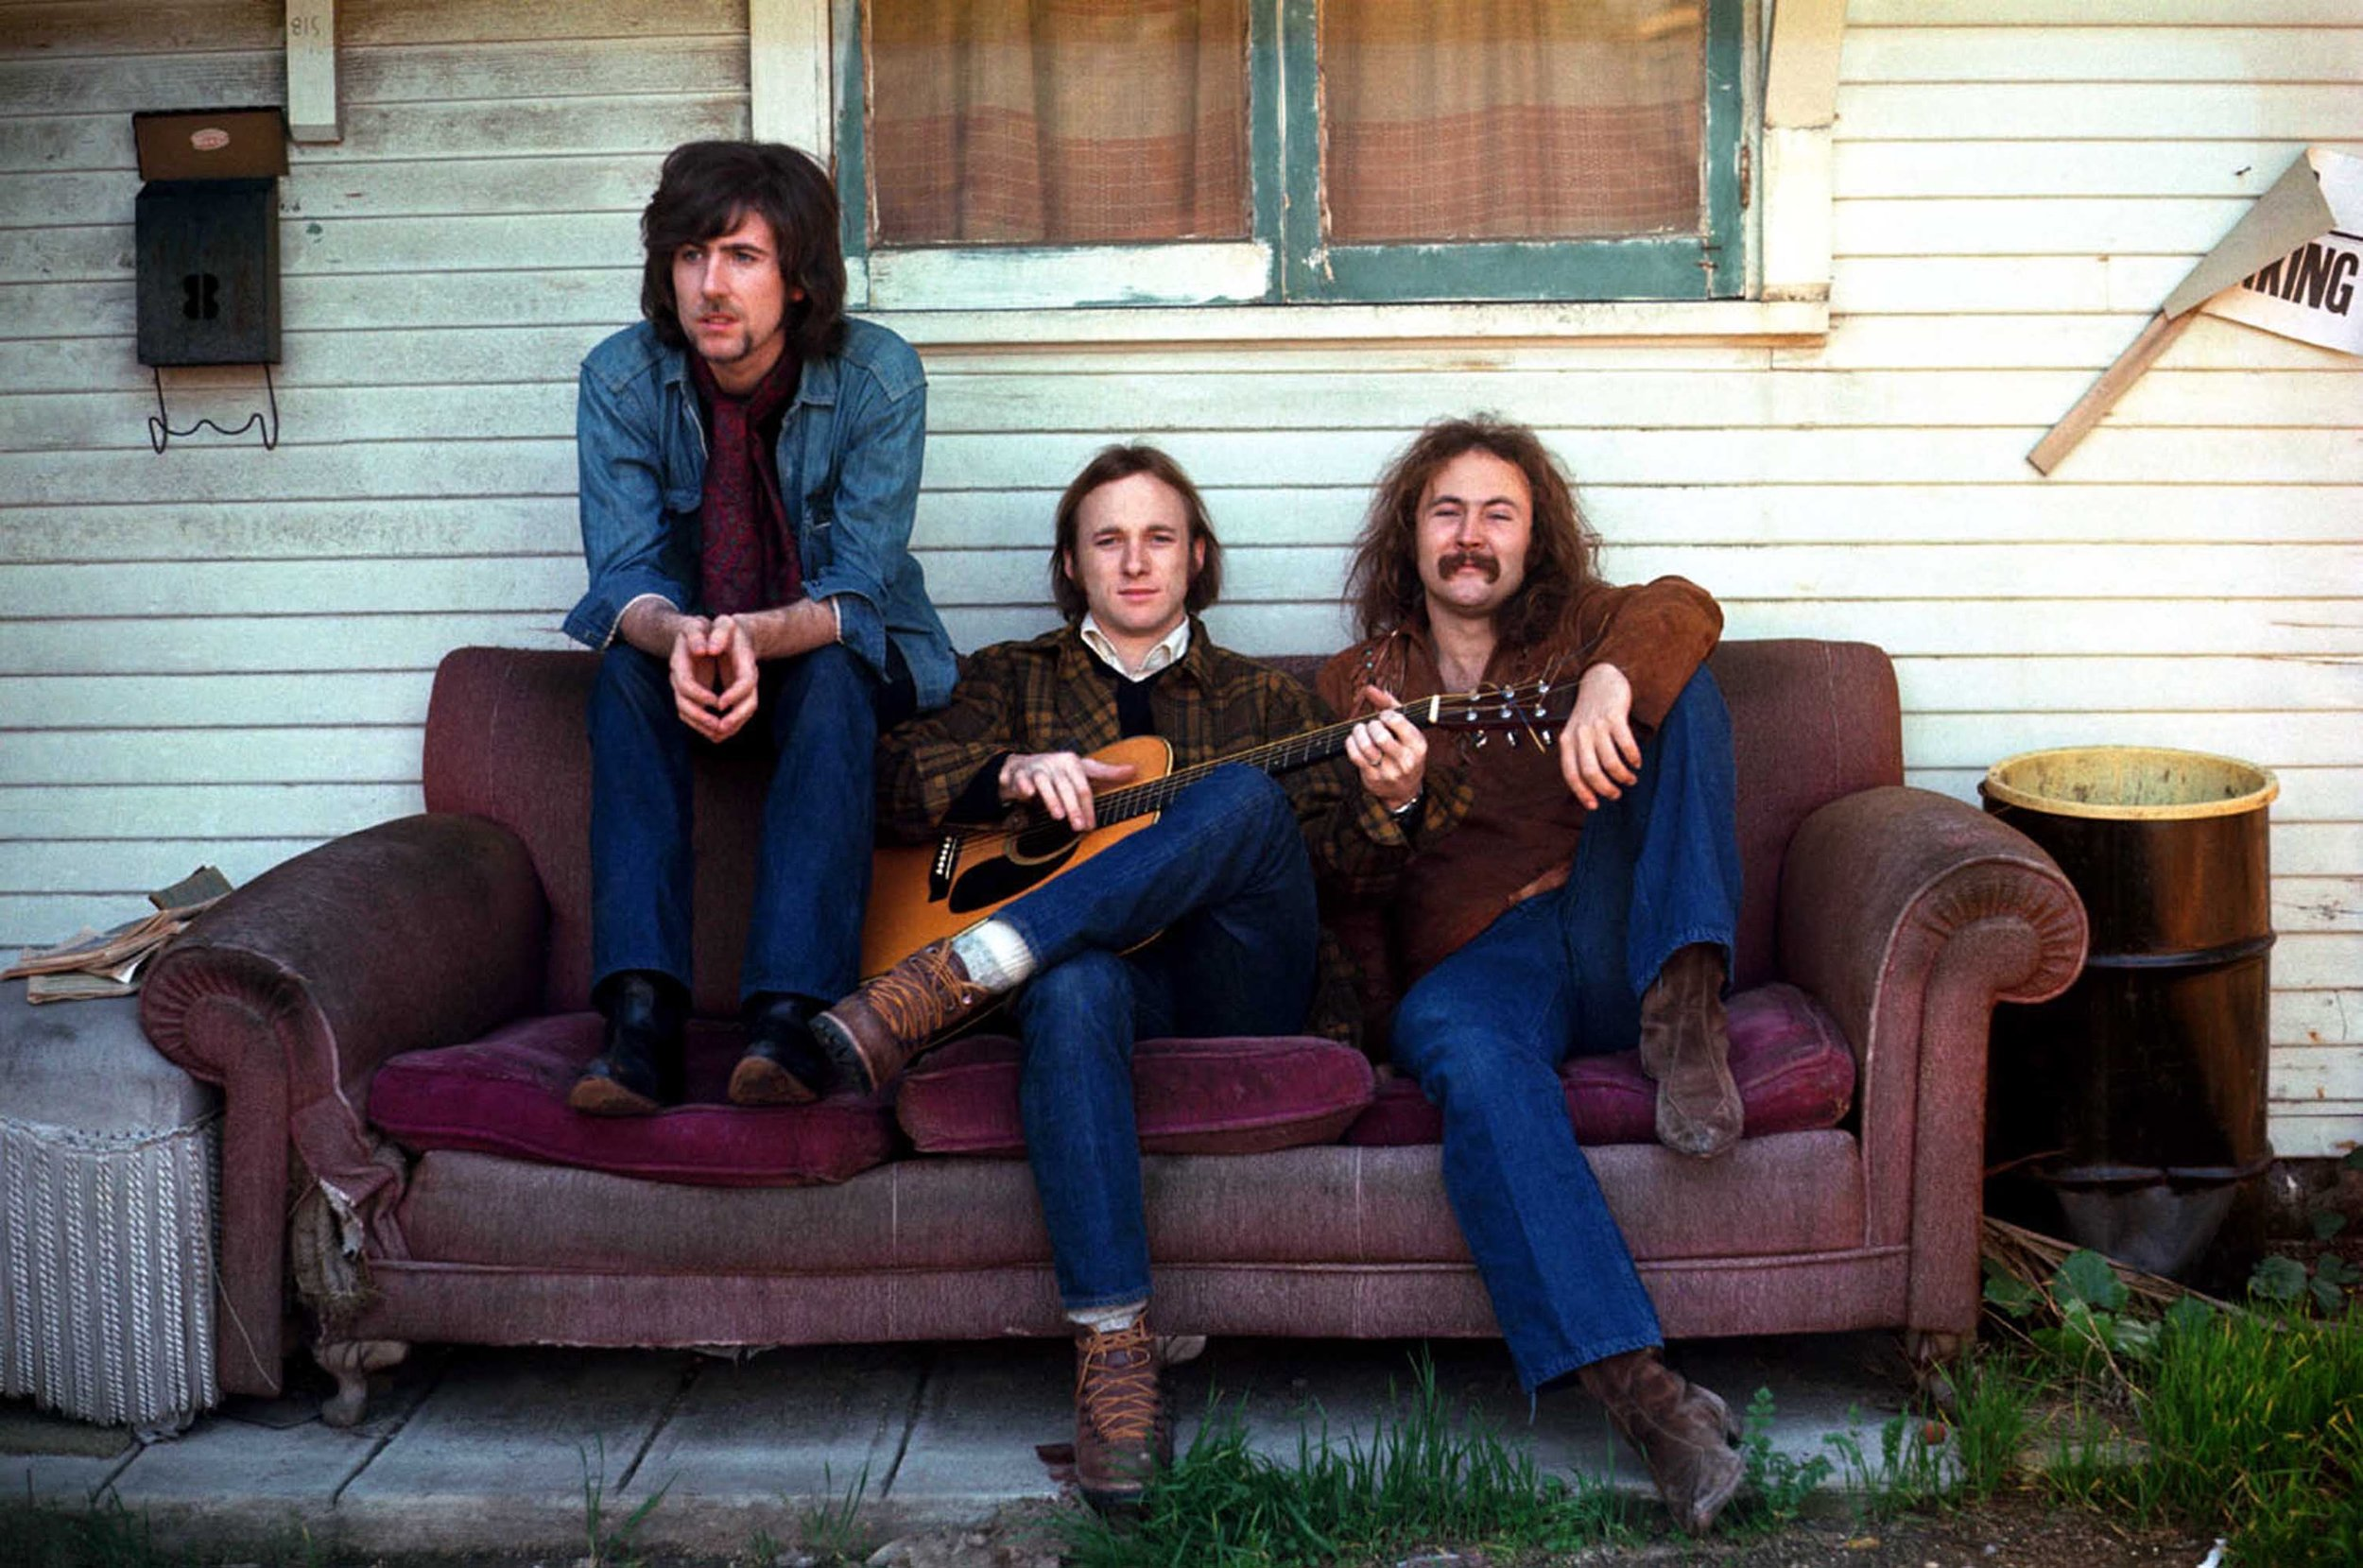 Crosby, Stills & Nash, Los Angeles, CA 1969 by Henry Diltz